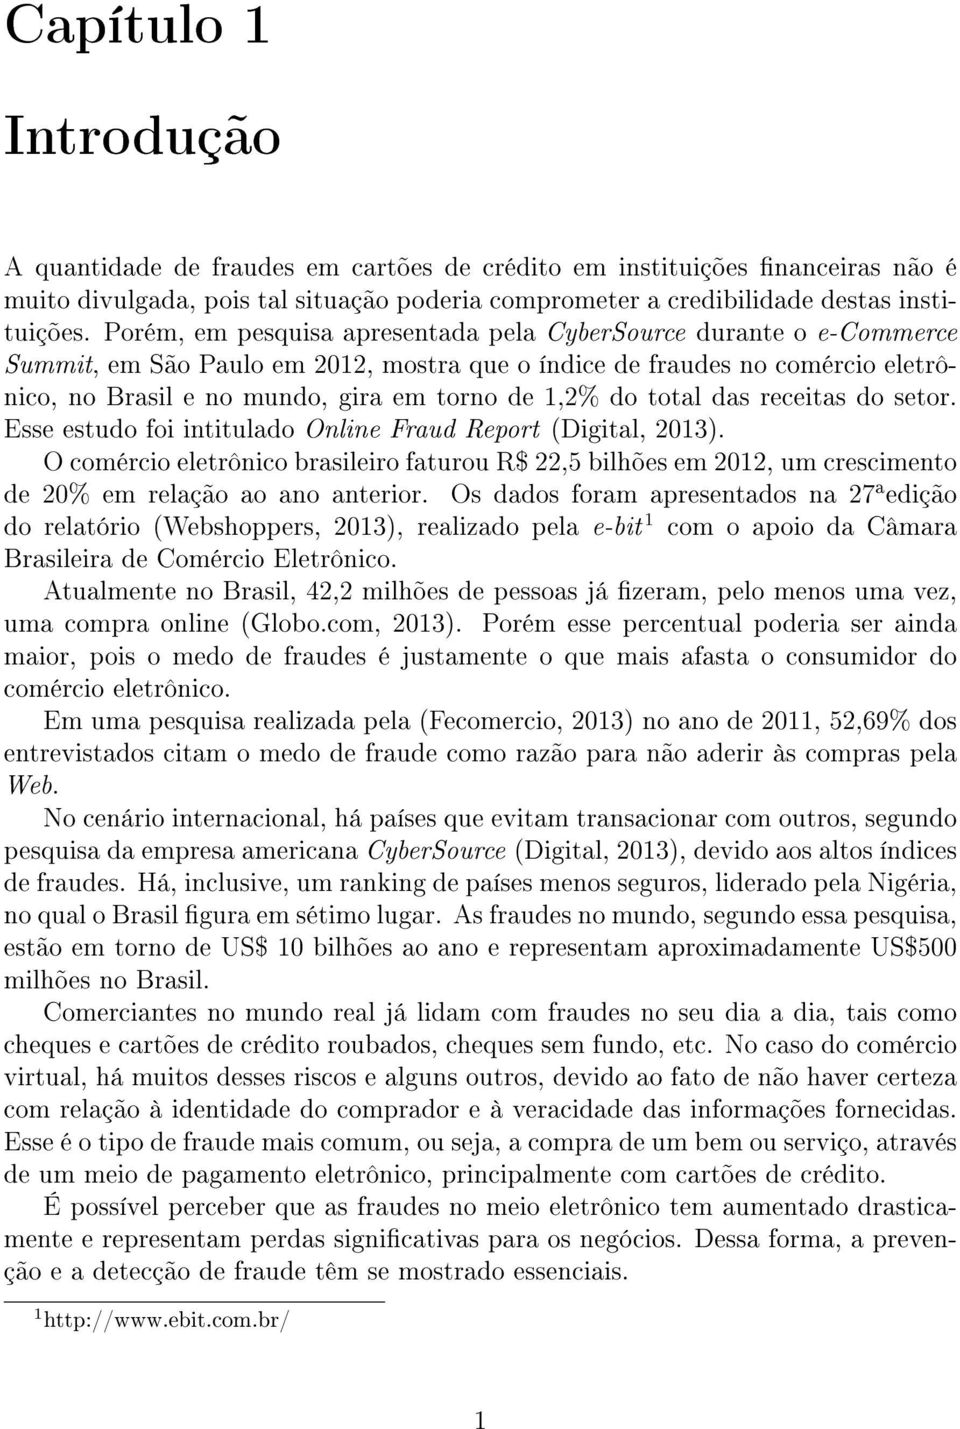 do total das receitas do setor. Esse estudo foi intitulado Online Fraud Report (Digital, 2013).